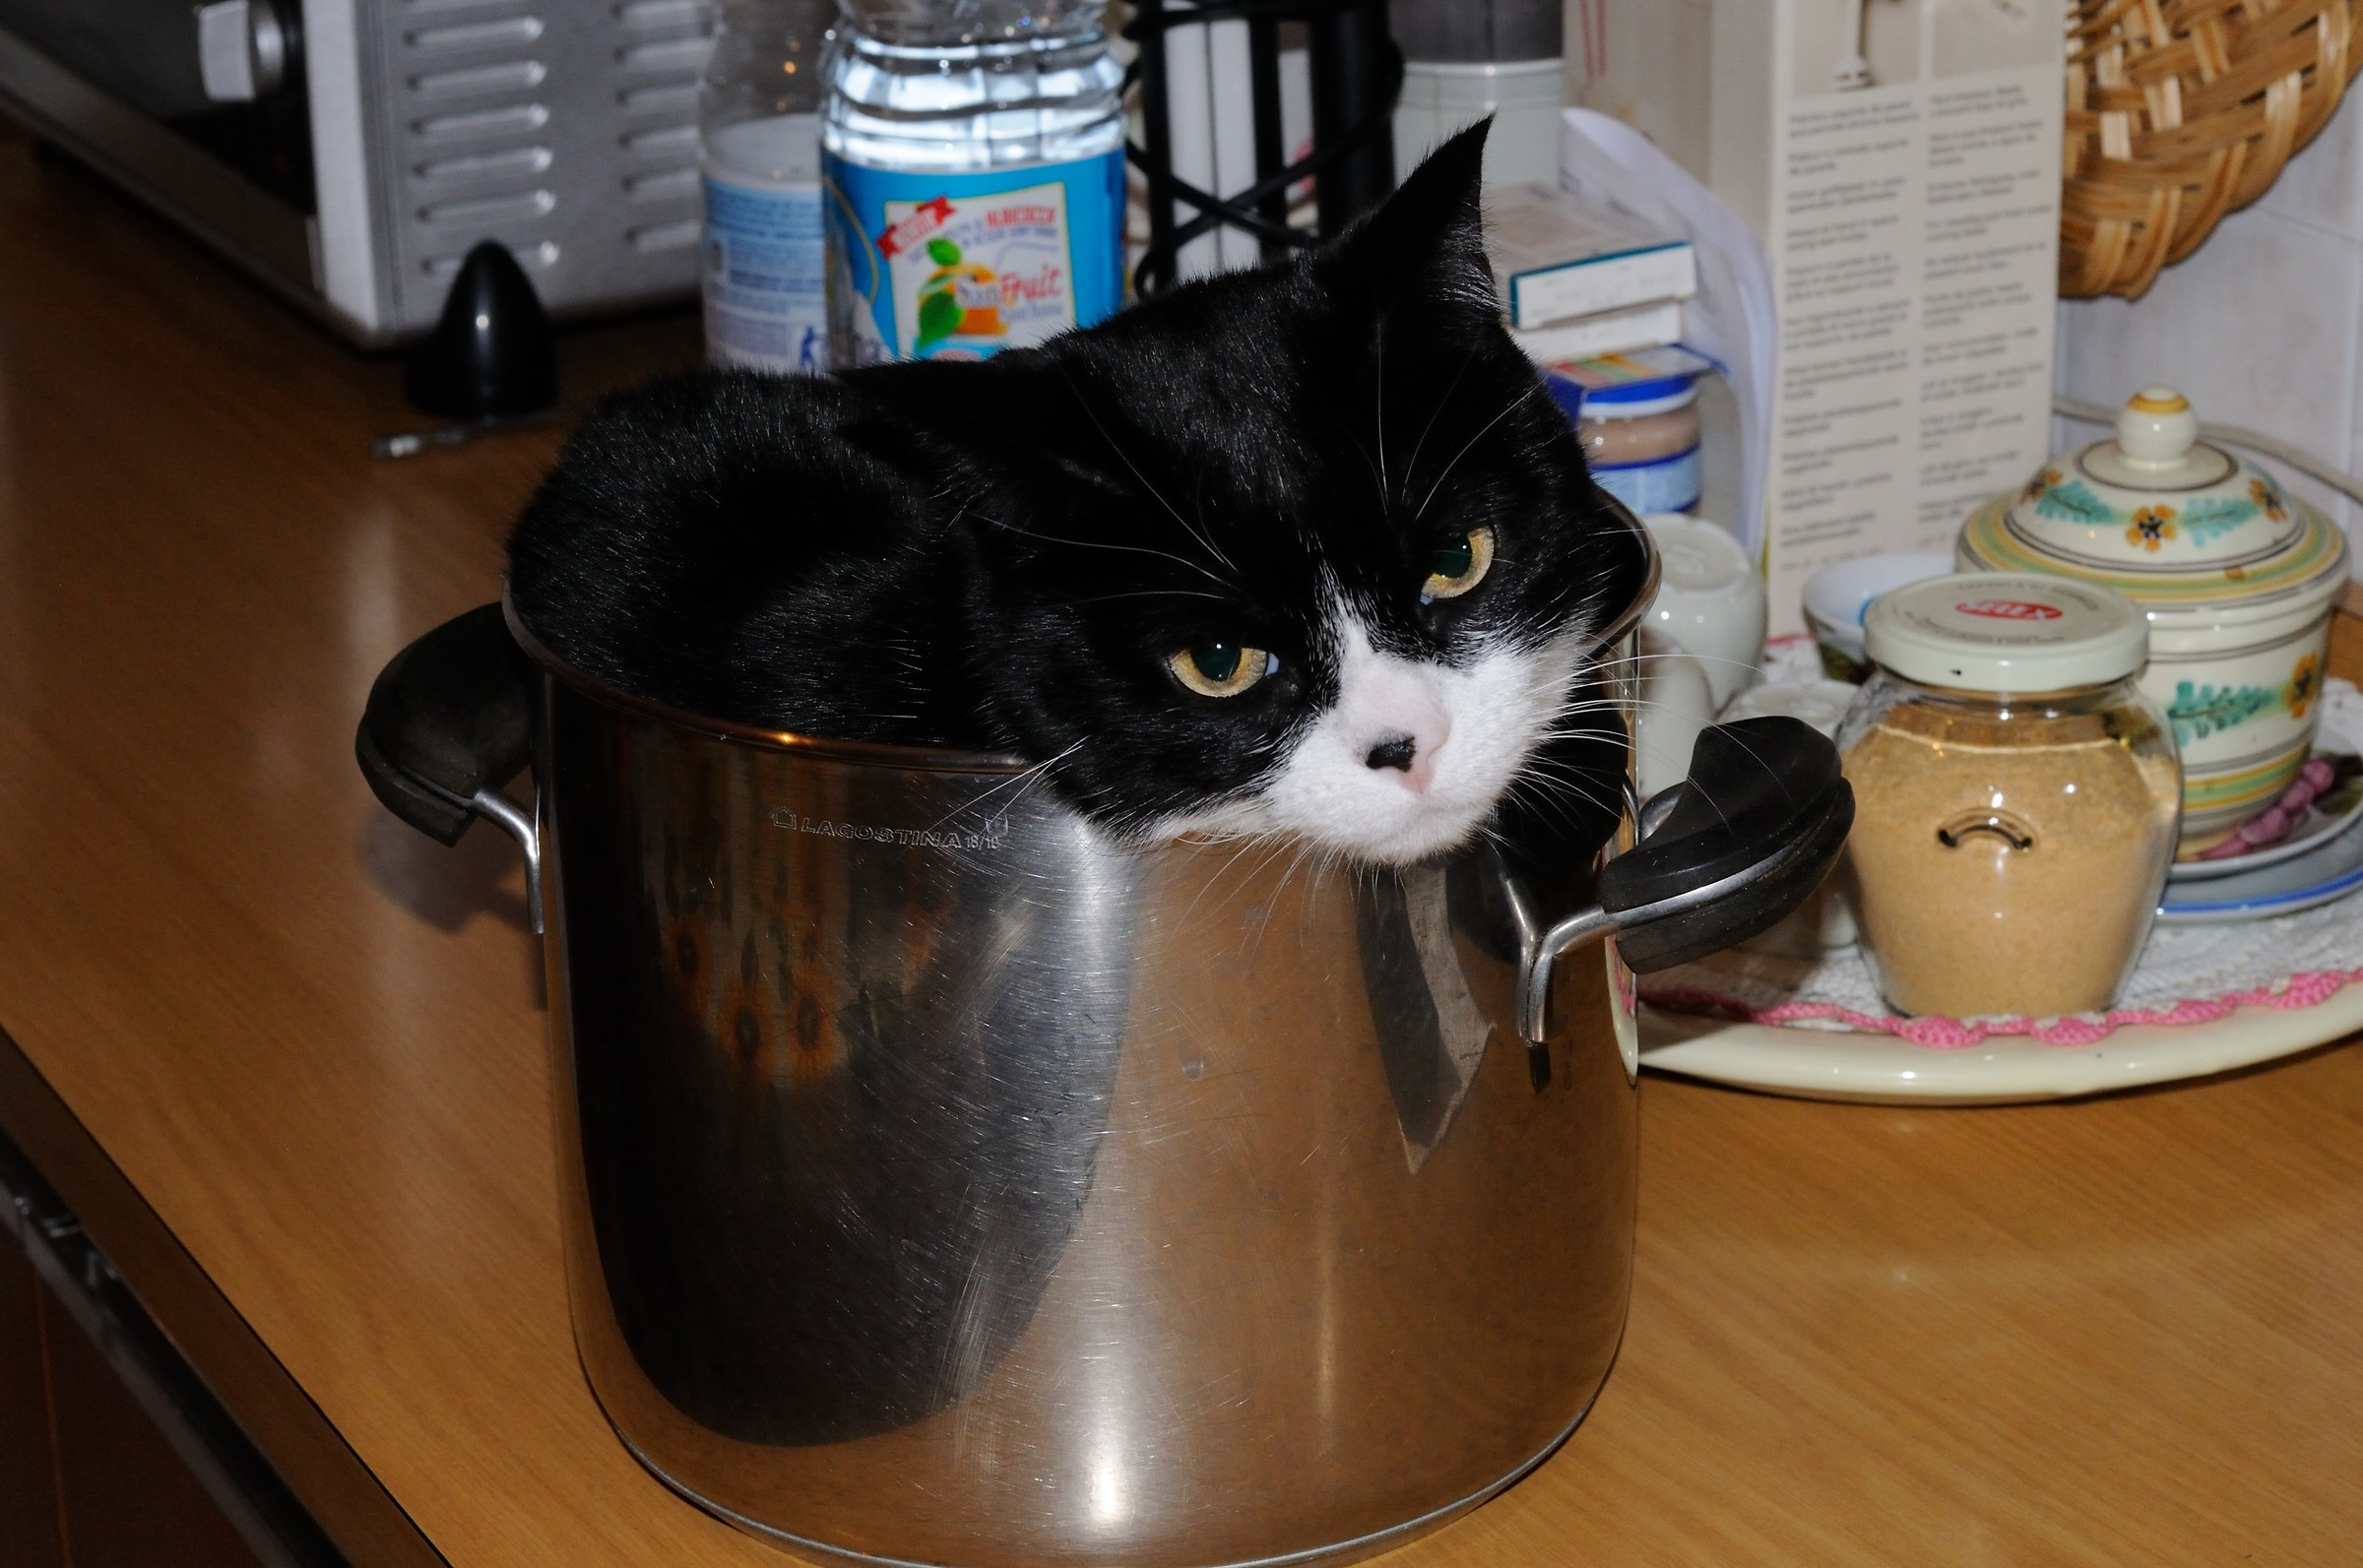 There hatching cat better cooks us...